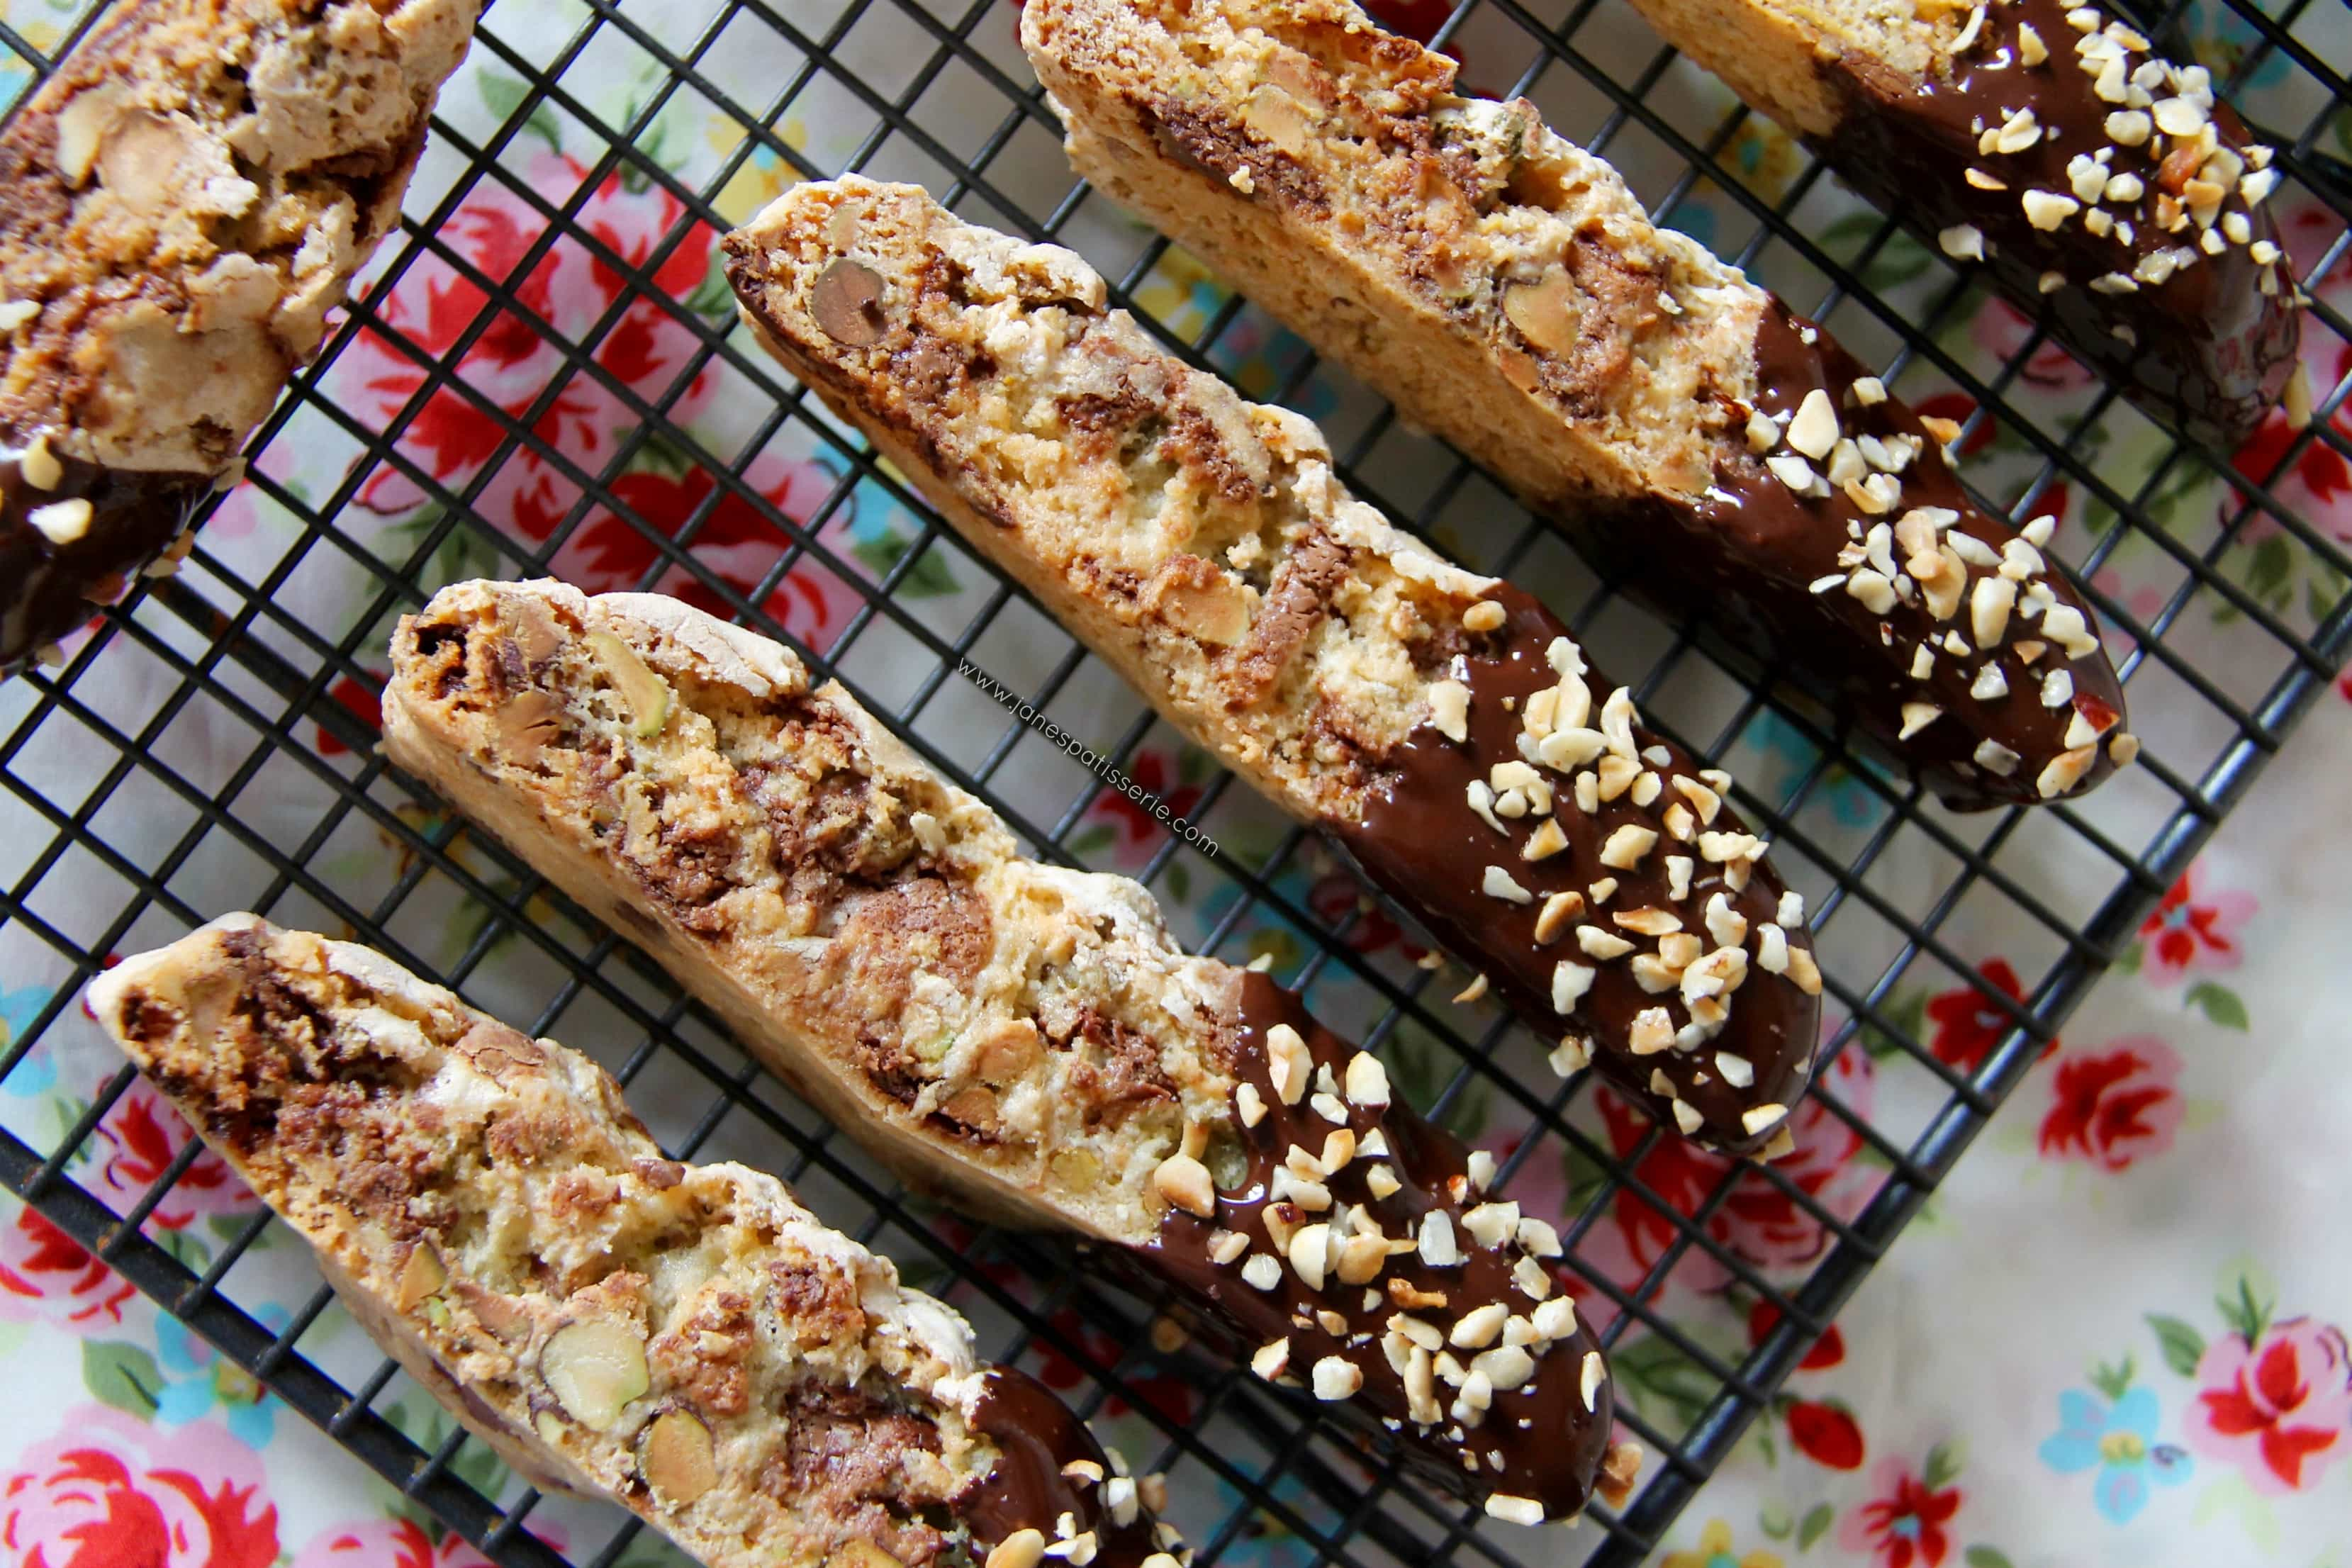 Pistachio Hazelnut and Chocolate Biscotti 6